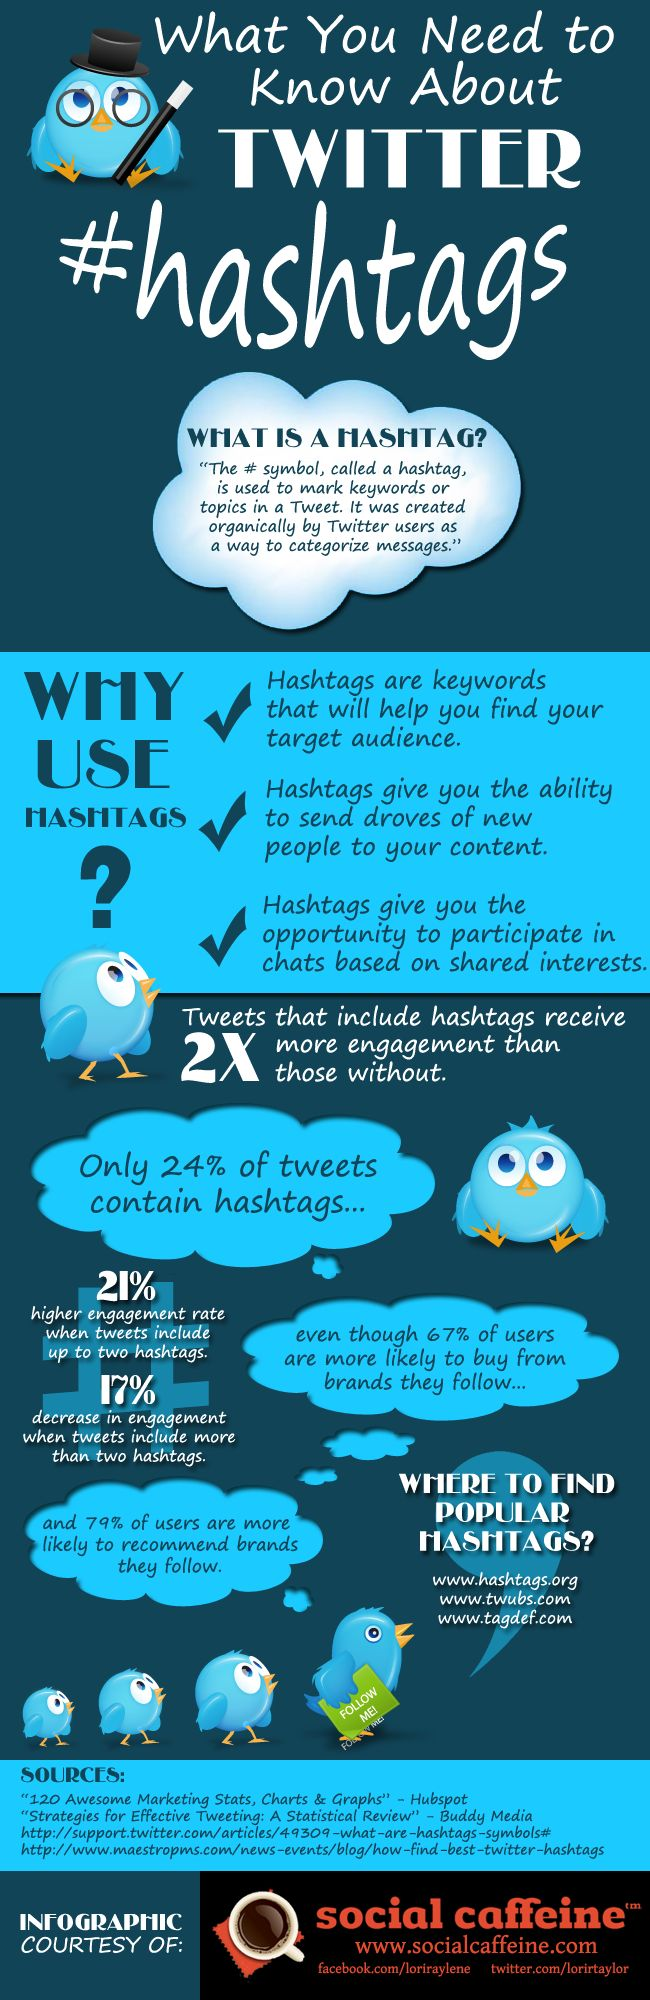 What you need to know about #Twitter's #Hastags #SocialMedia